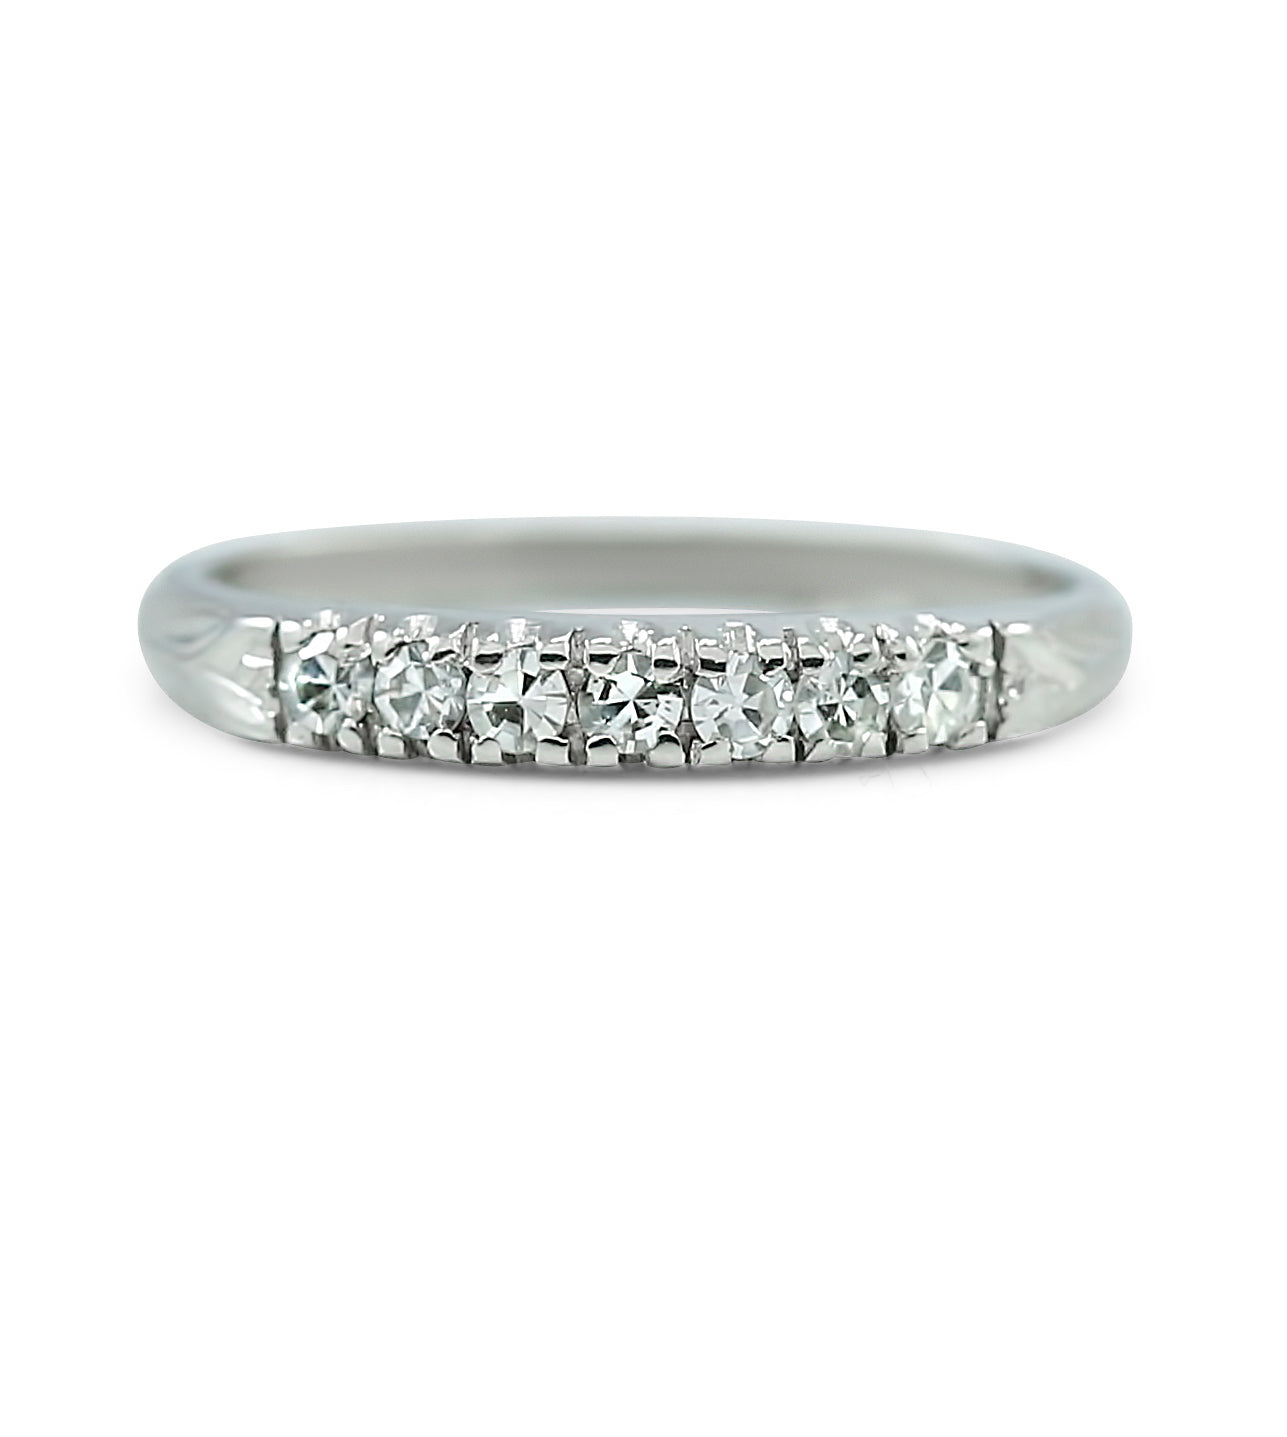 Platinum estate wedding band with ~0.25tcw diamonds and an engraved pattern on the band